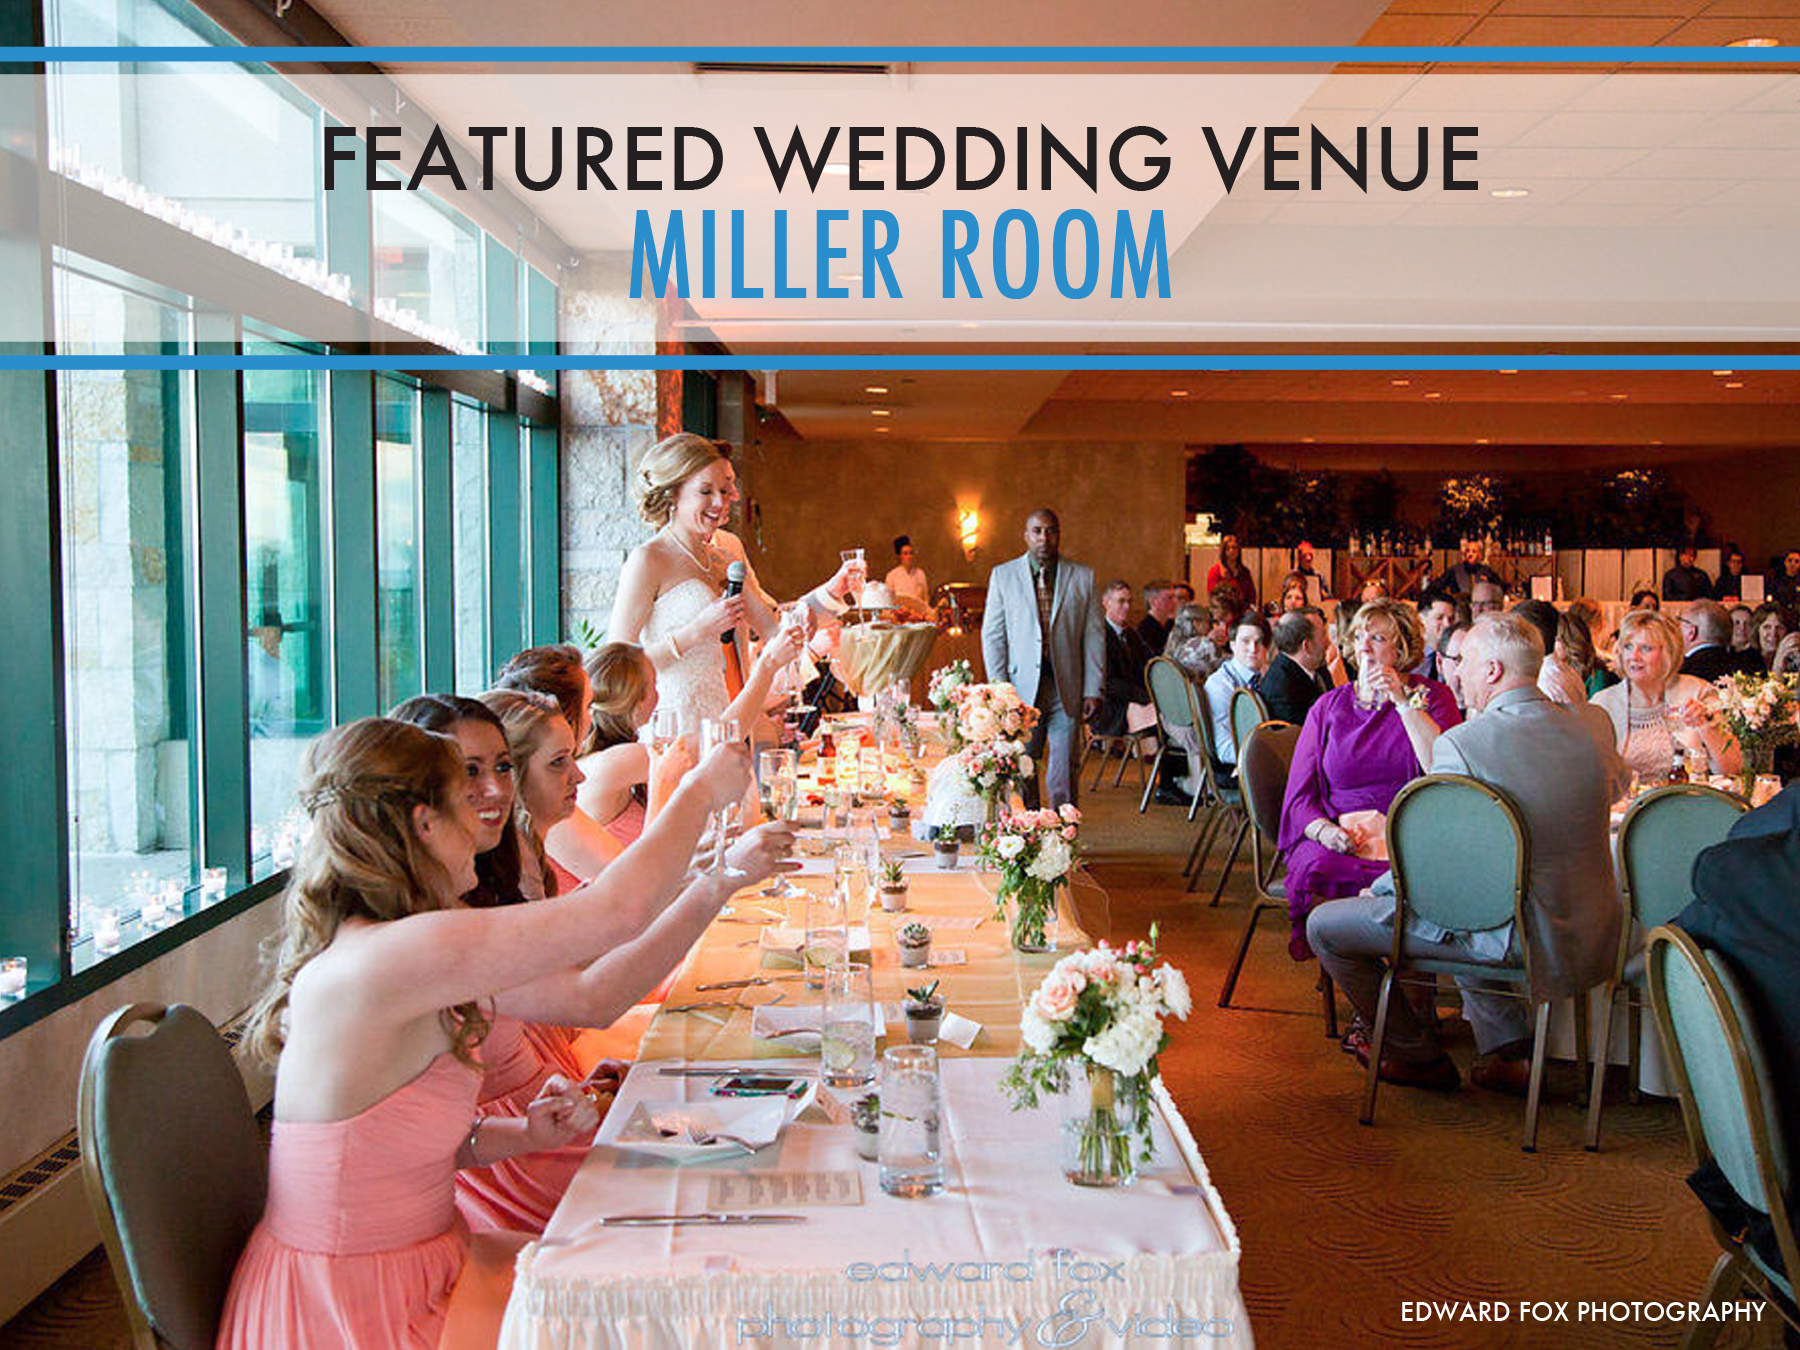 With Picturesque Views Of Lake Michigan And The Surrounding Gardens Miller Room Is An Excellent